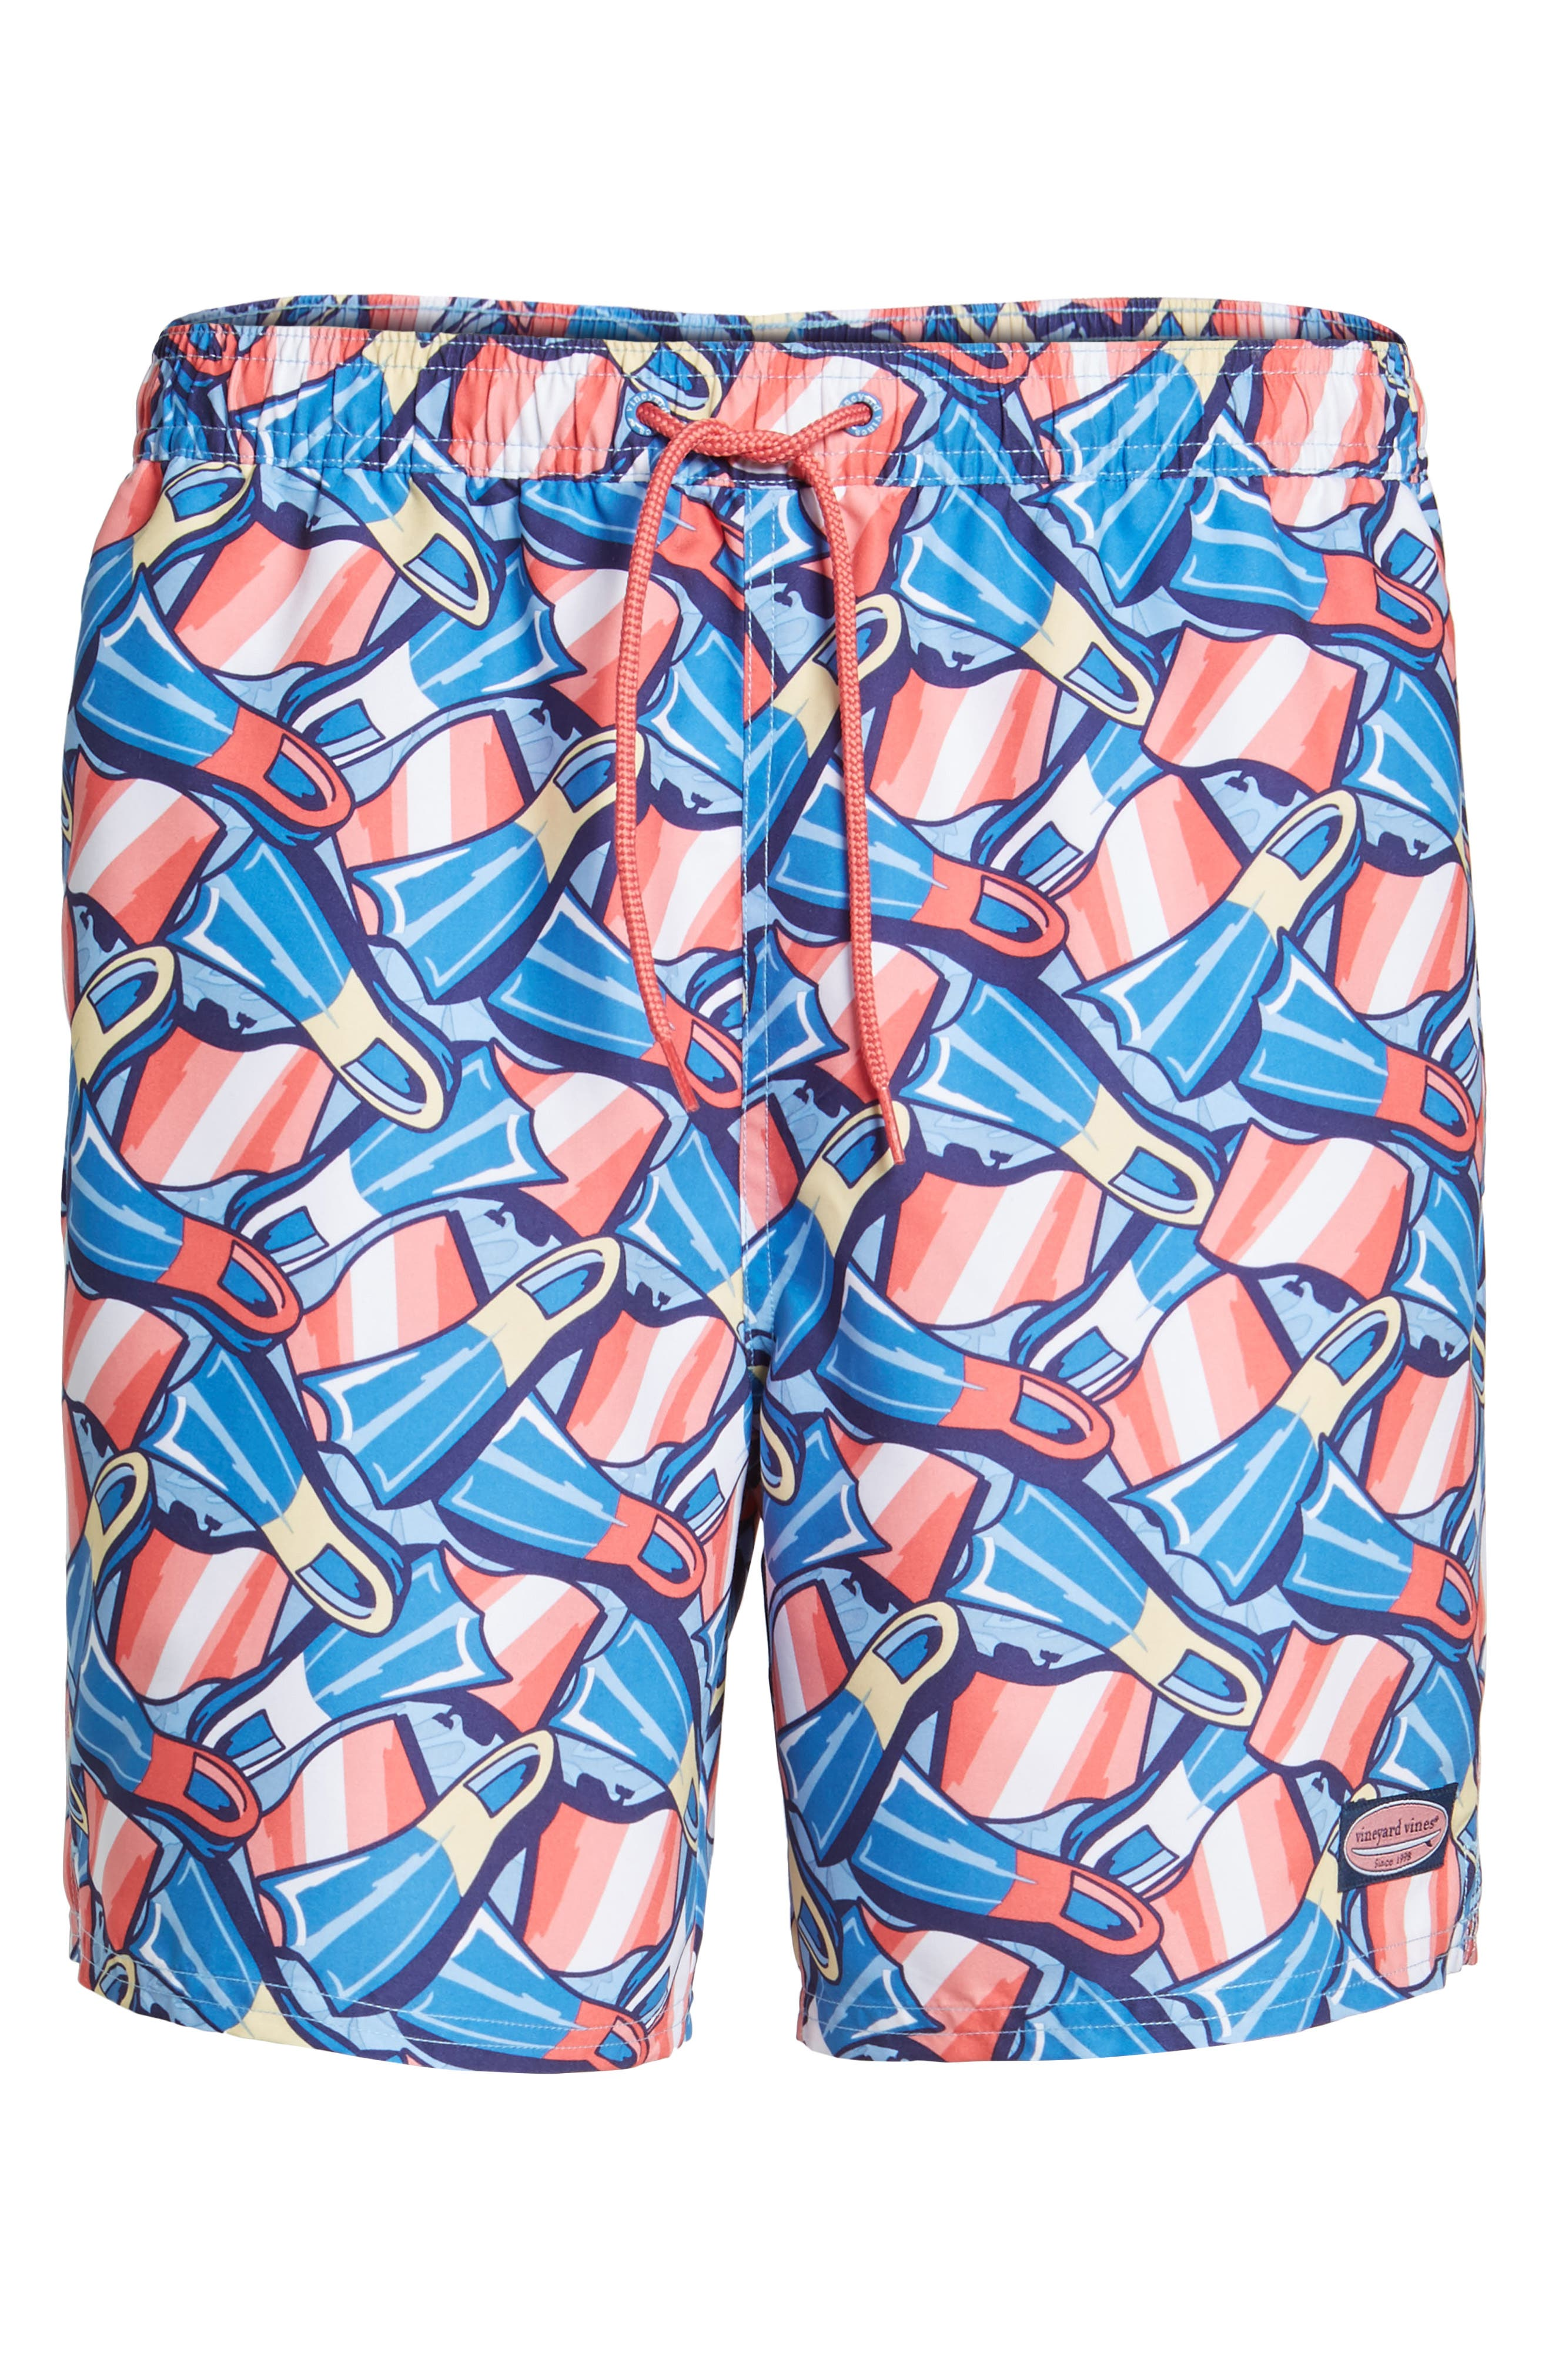 Flippers Chappy Swim Trunks,                             Alternate thumbnail 6, color,                             437